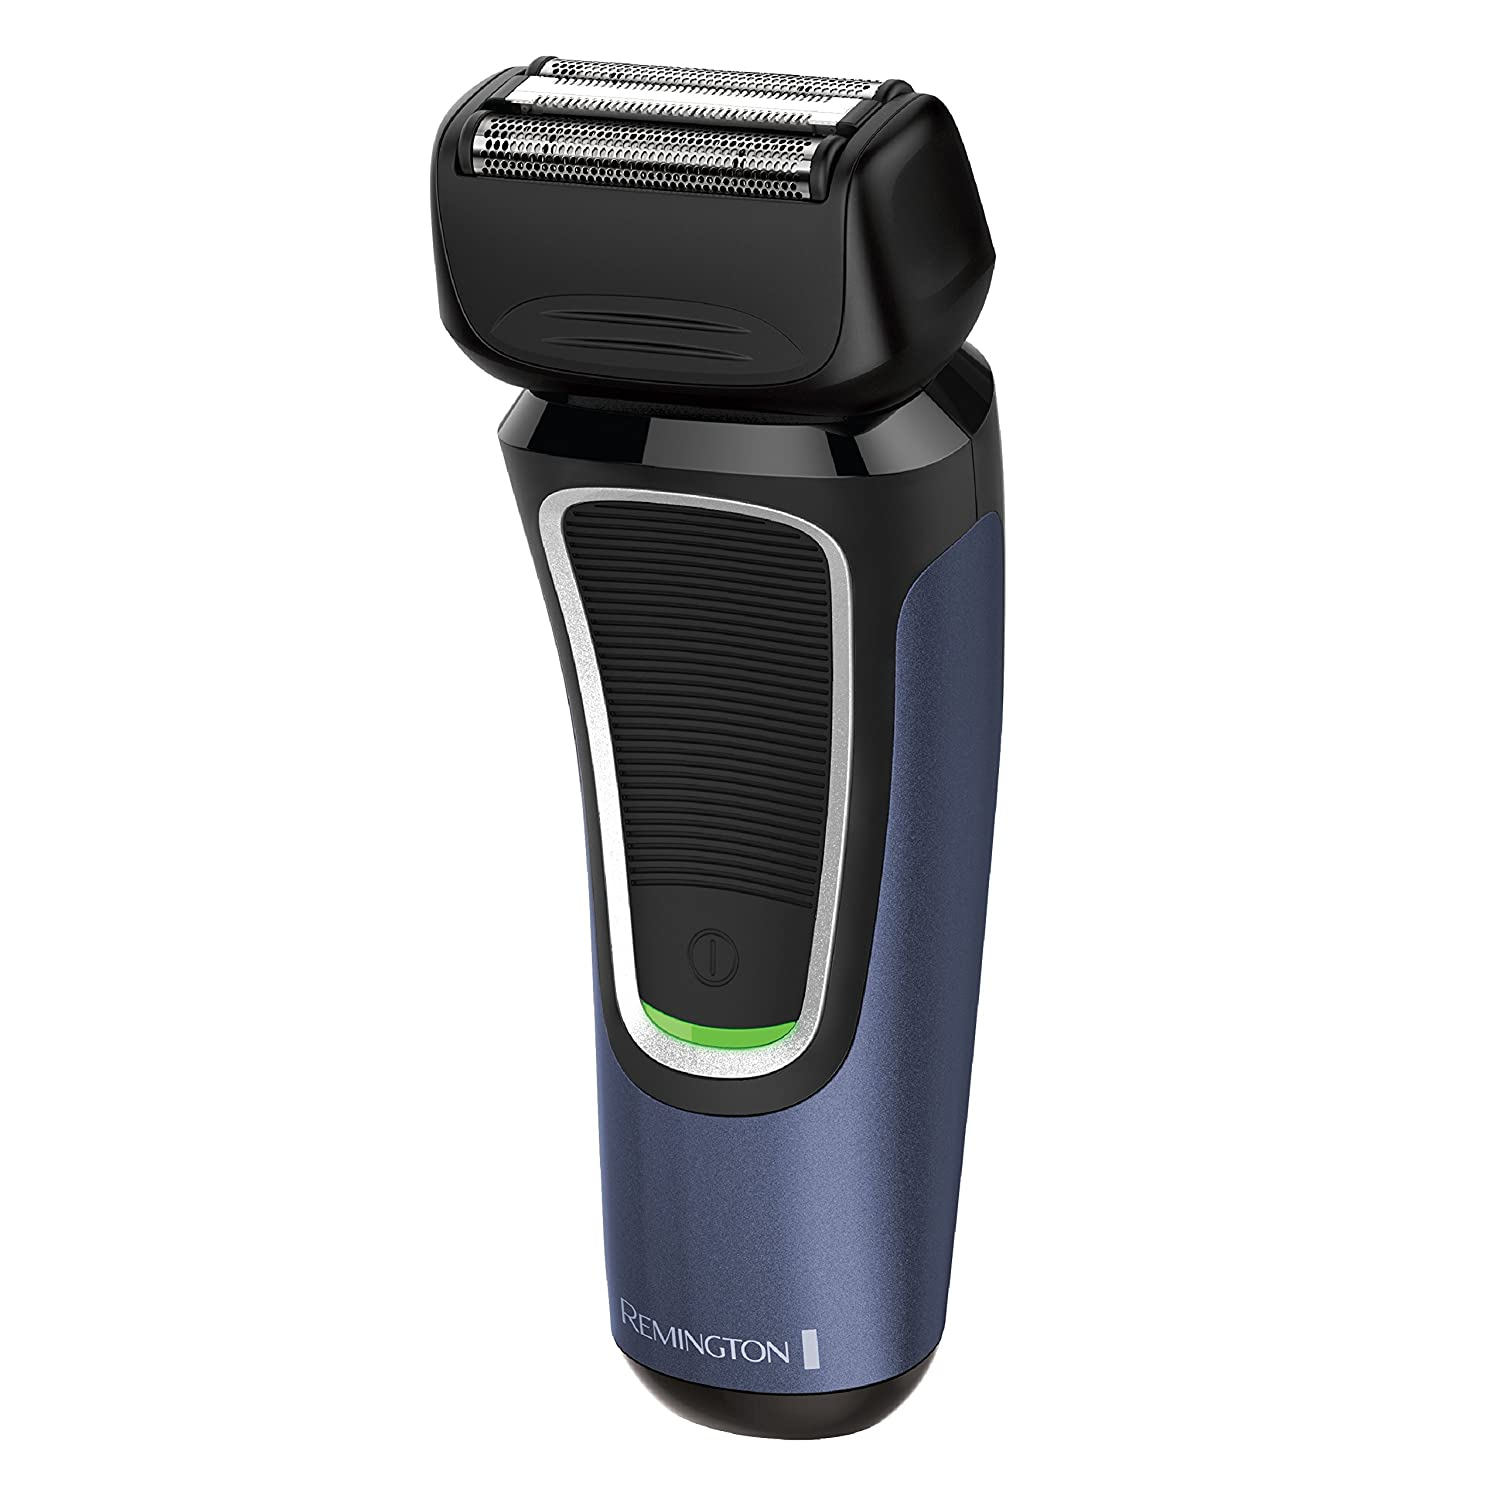 Remington PF7500 F5 Comfort Series Foil Shaver, Mens Electric Razor, Electric Shaver Renewed